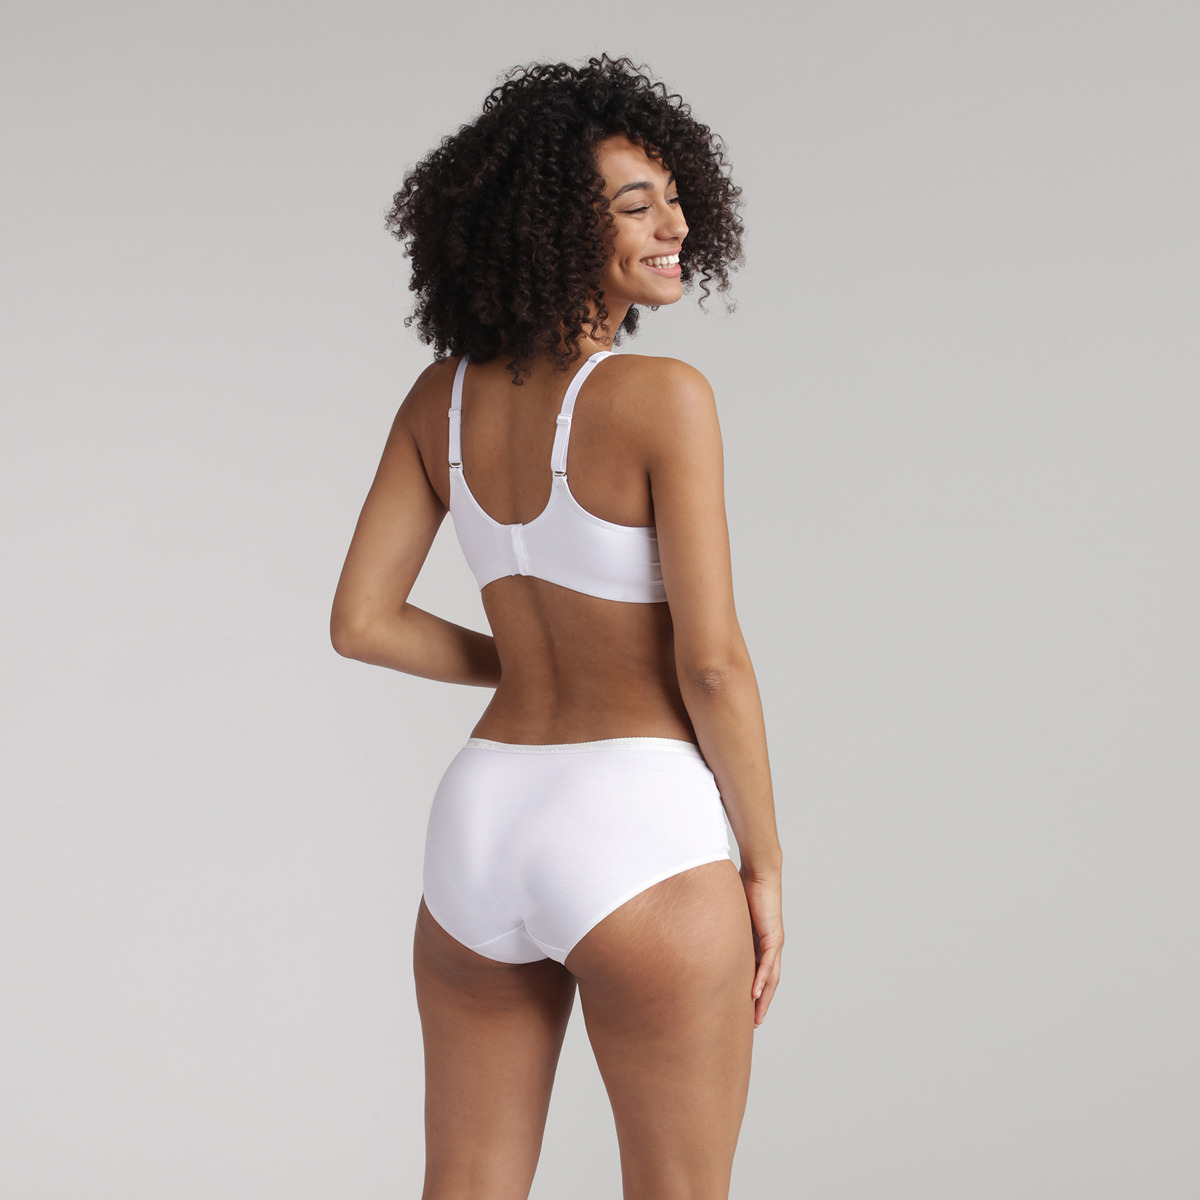 Sujetador sin aros blanco - Feel Good Support, , PLAYTEX